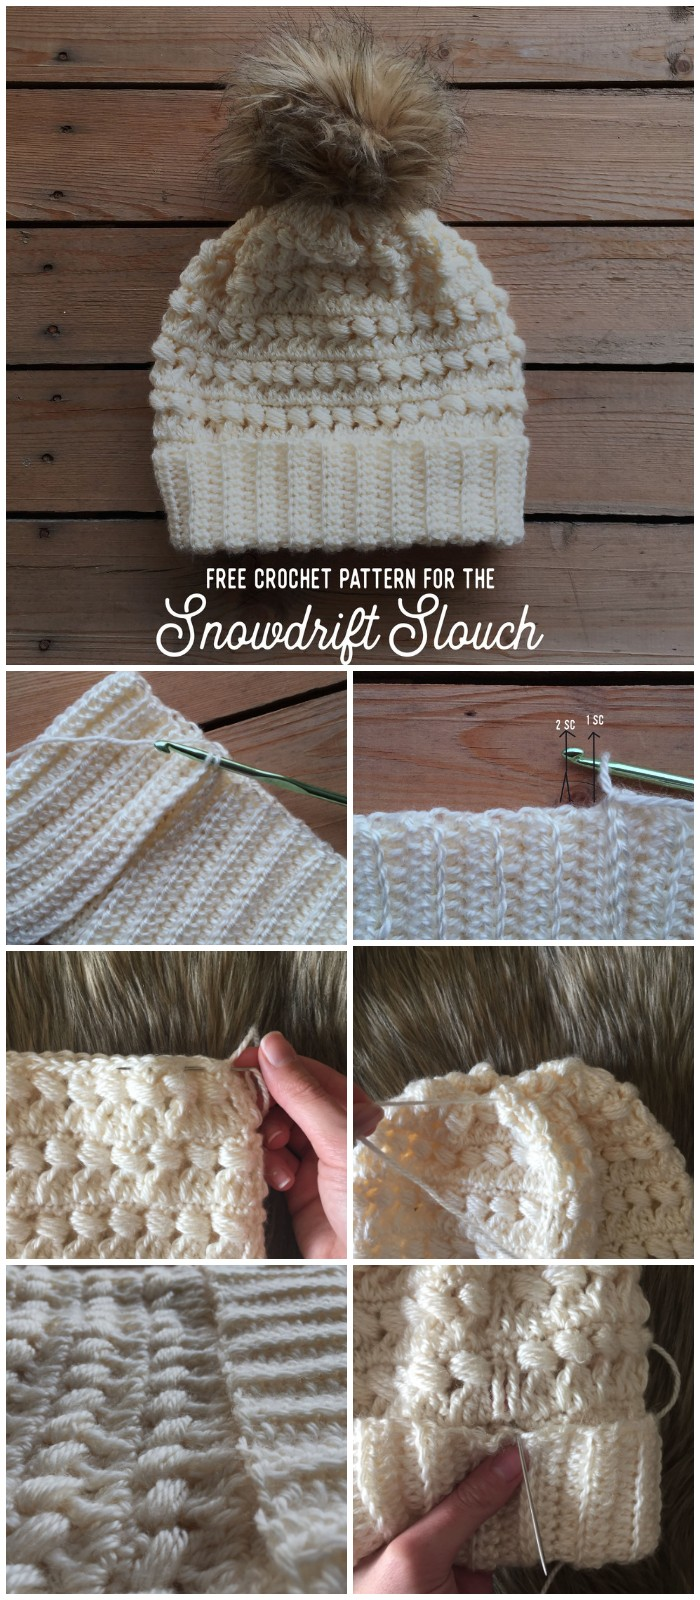 Free Crochet Pattern for The Snowdrift Slouch